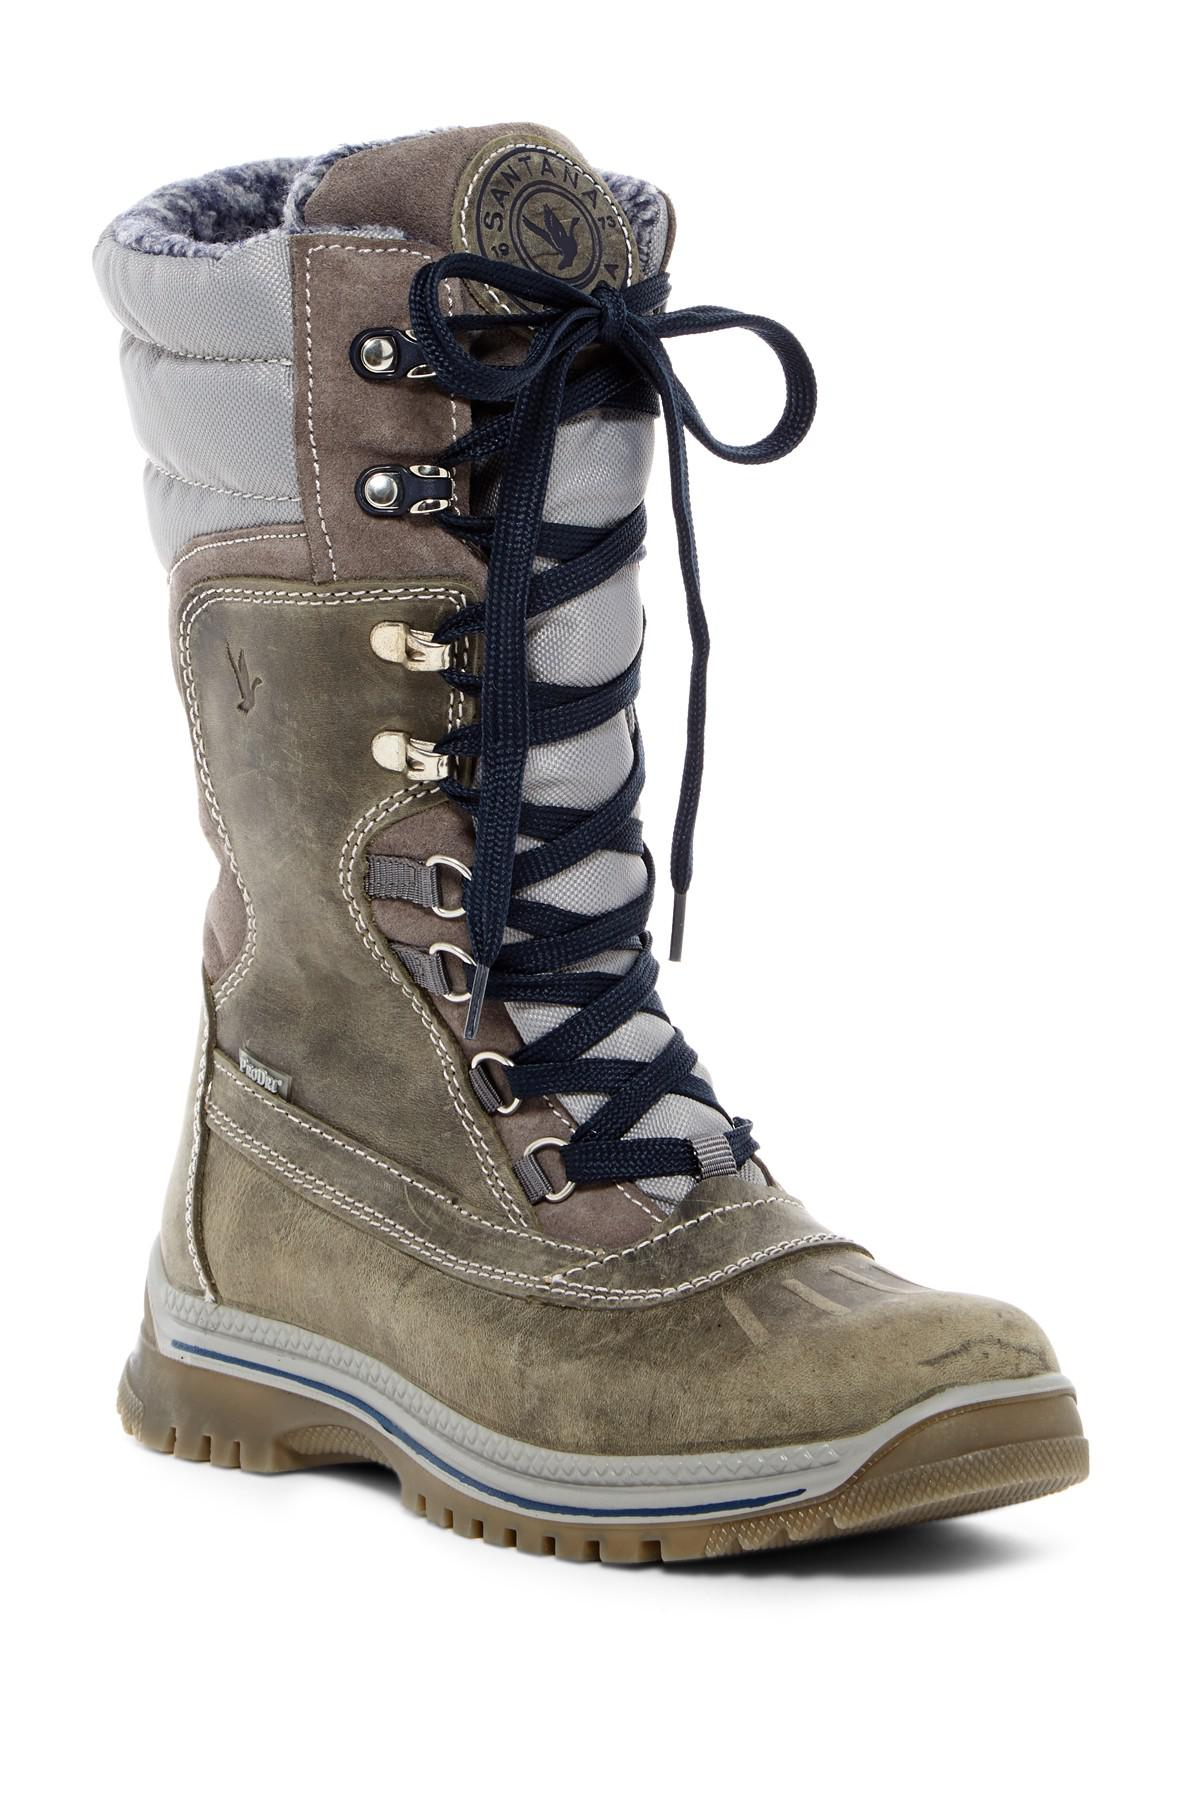 a1d2eb3811a Lyst - Santana Canada Modena Wool Lined Waterproof Boot in Gray